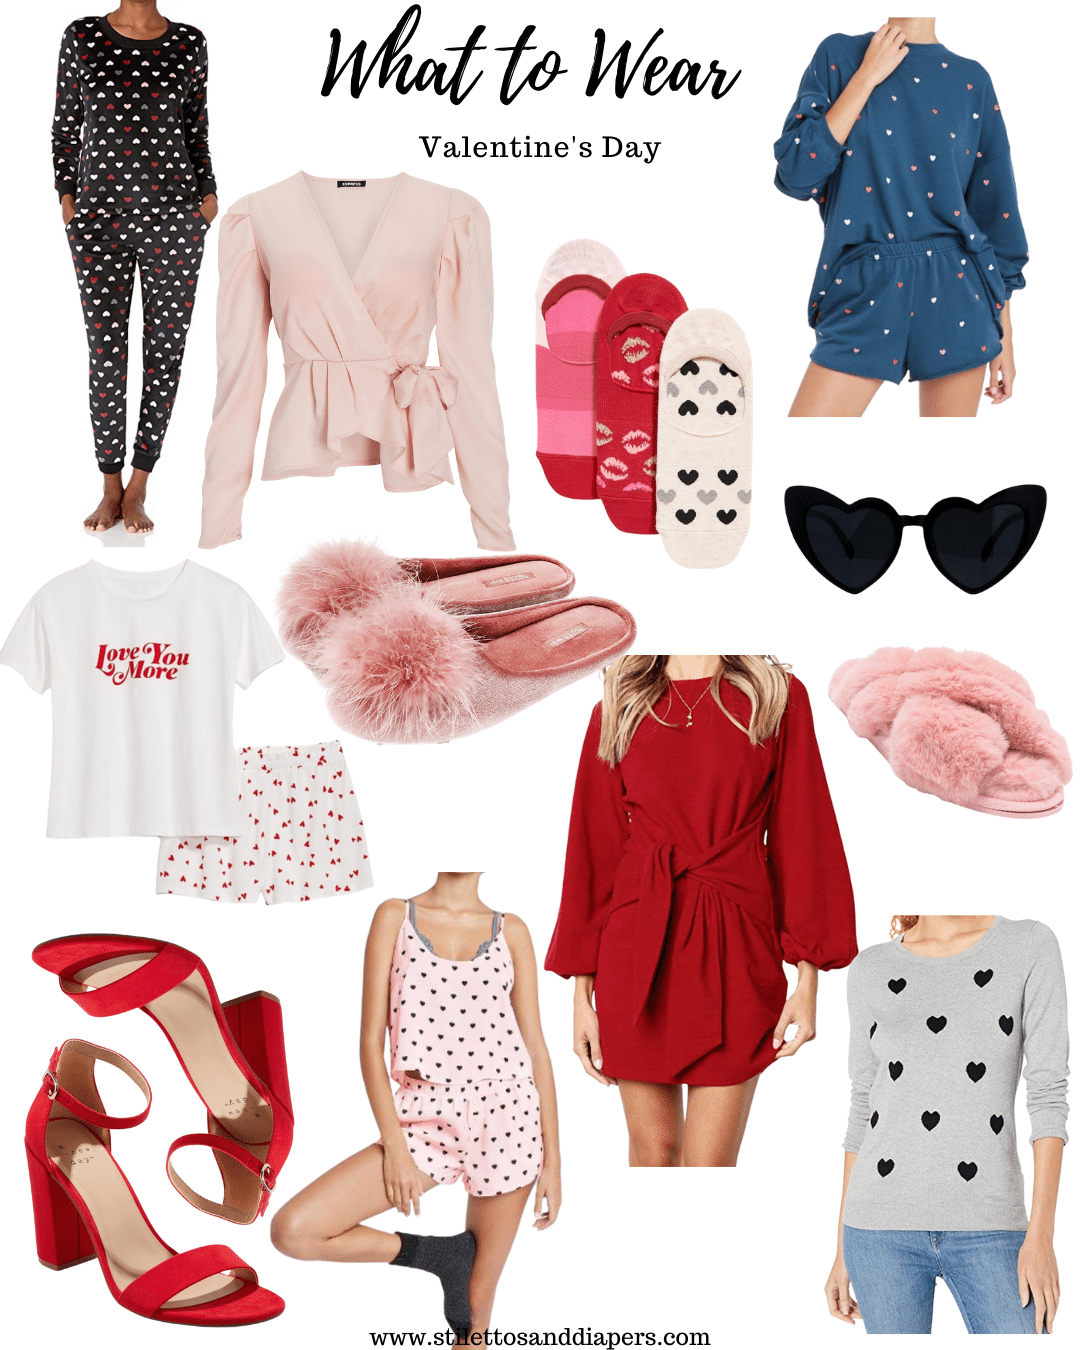 Valentine's Day Looks and Fun!